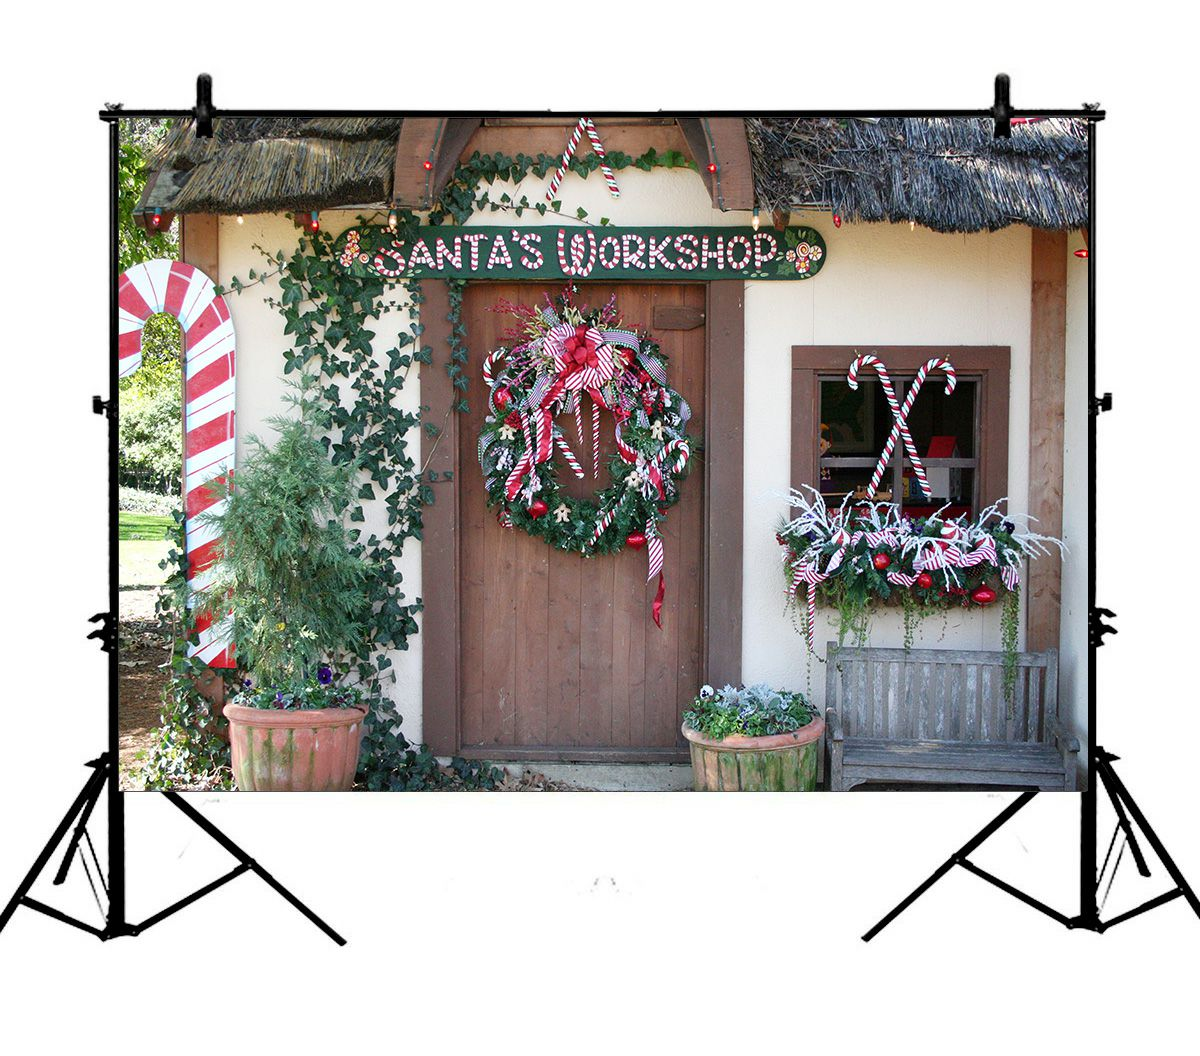 Gckg 7x5ft Merry Christmas Garland Santa S Workshop Front Door Rustic Candy Cane Polyester Photography Backdrop Photo Background Studio Props Walmart Canada